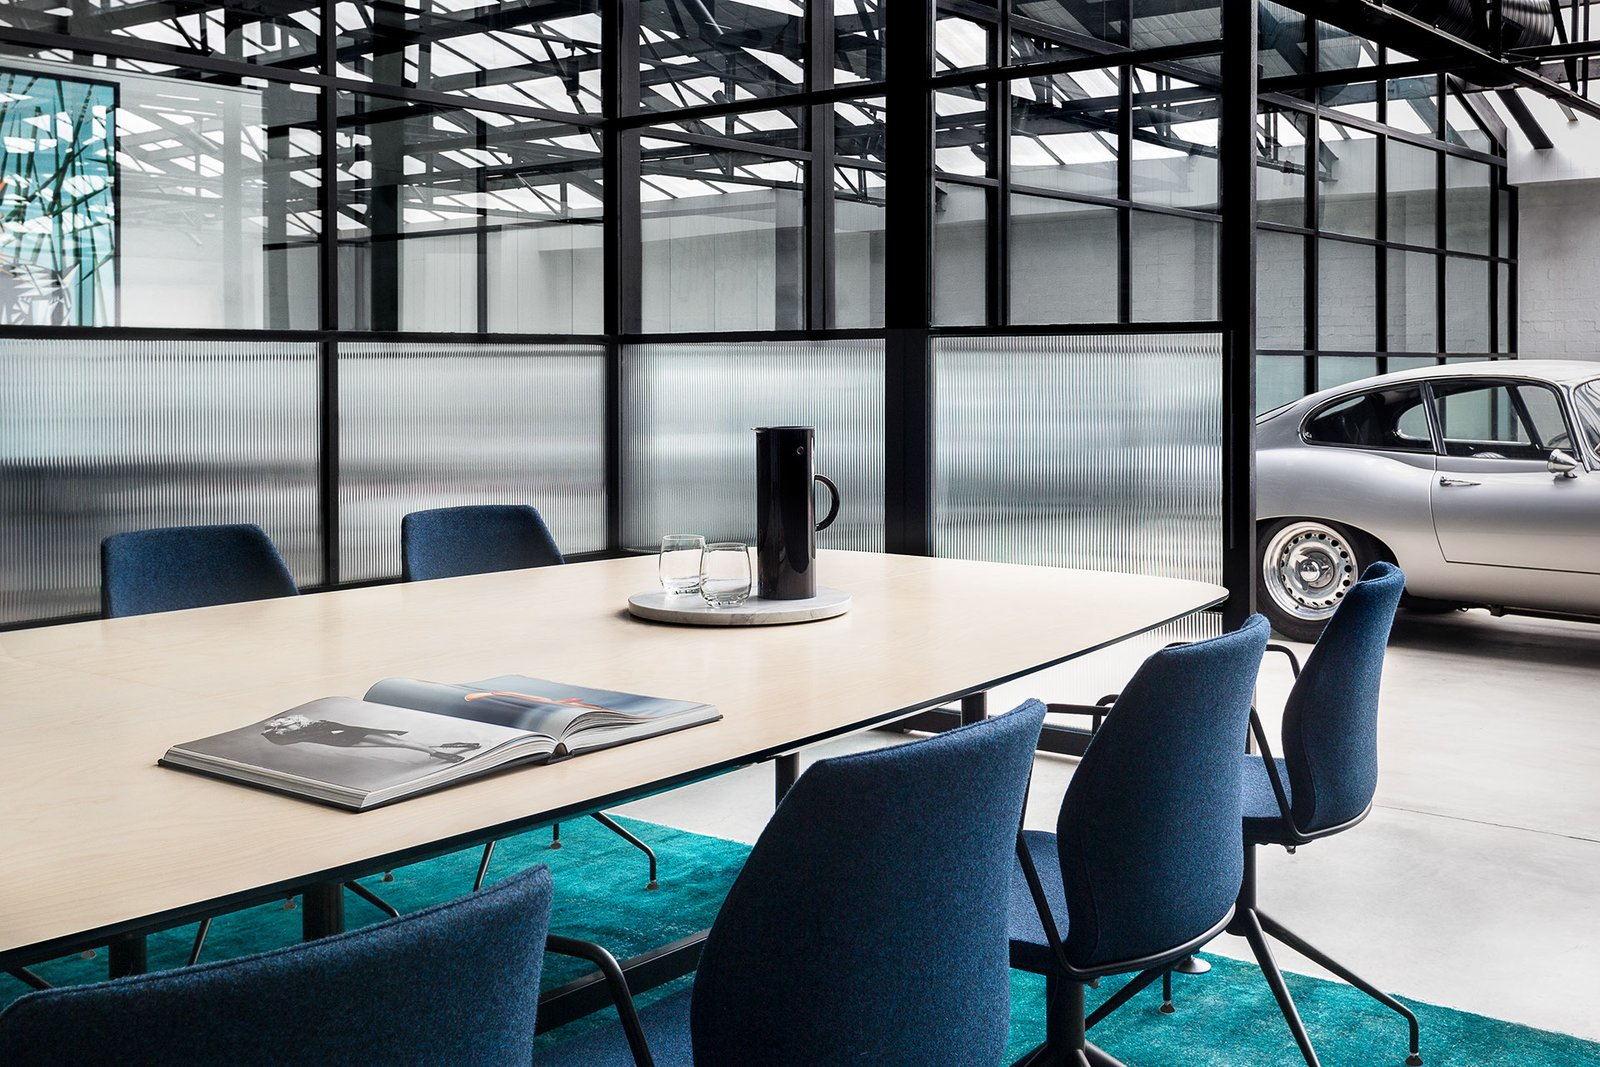 Photo 6 of 14 in An Art Deco Warehouse in Melbourne Is Converted Into a Shared Office Space